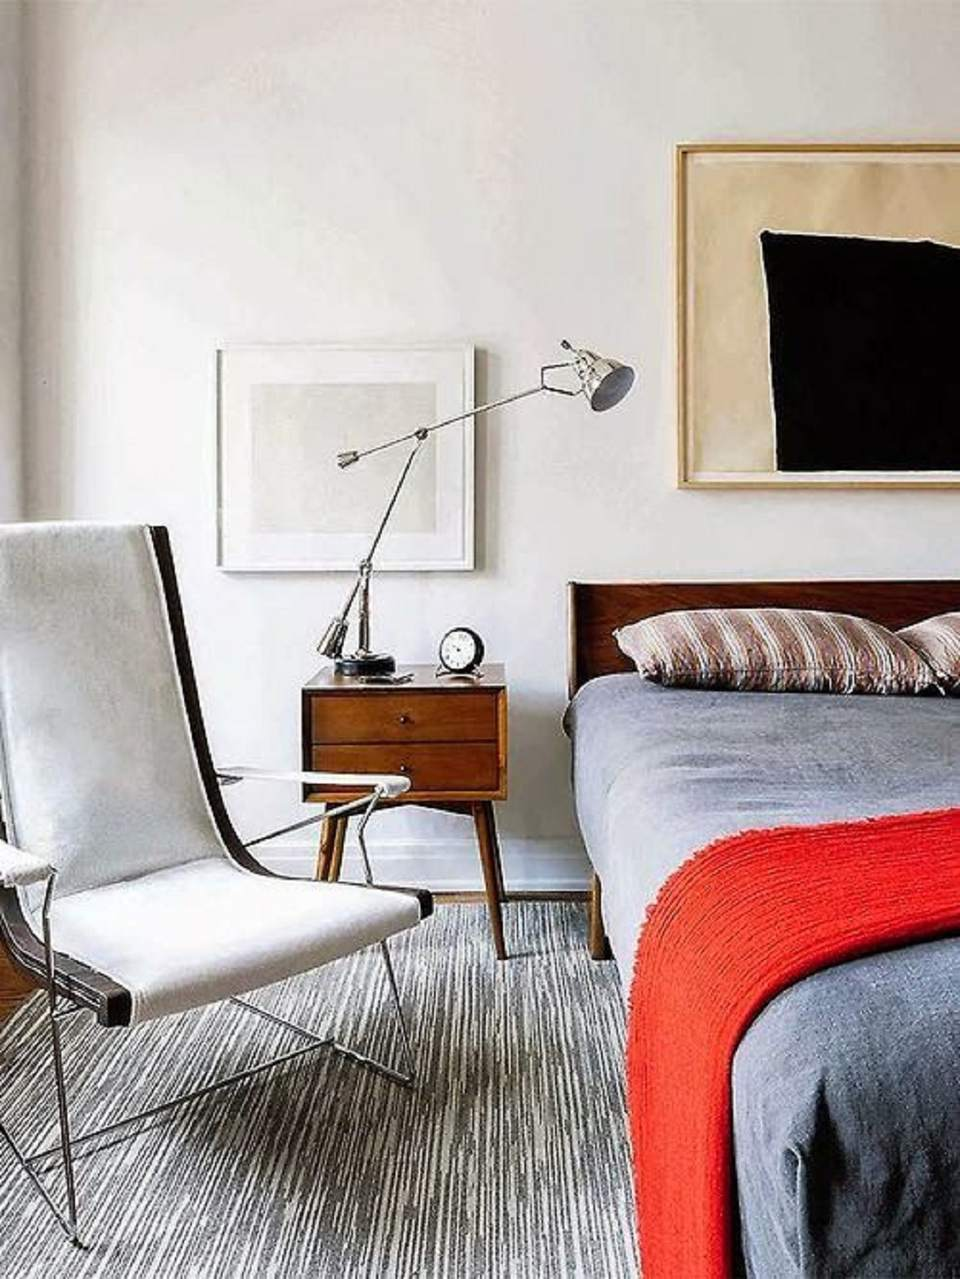 Admirable Mid Century Modern Bedroom Decorating Ideas Inzonedesignstudio Interior Chair Design Inzonedesignstudiocom